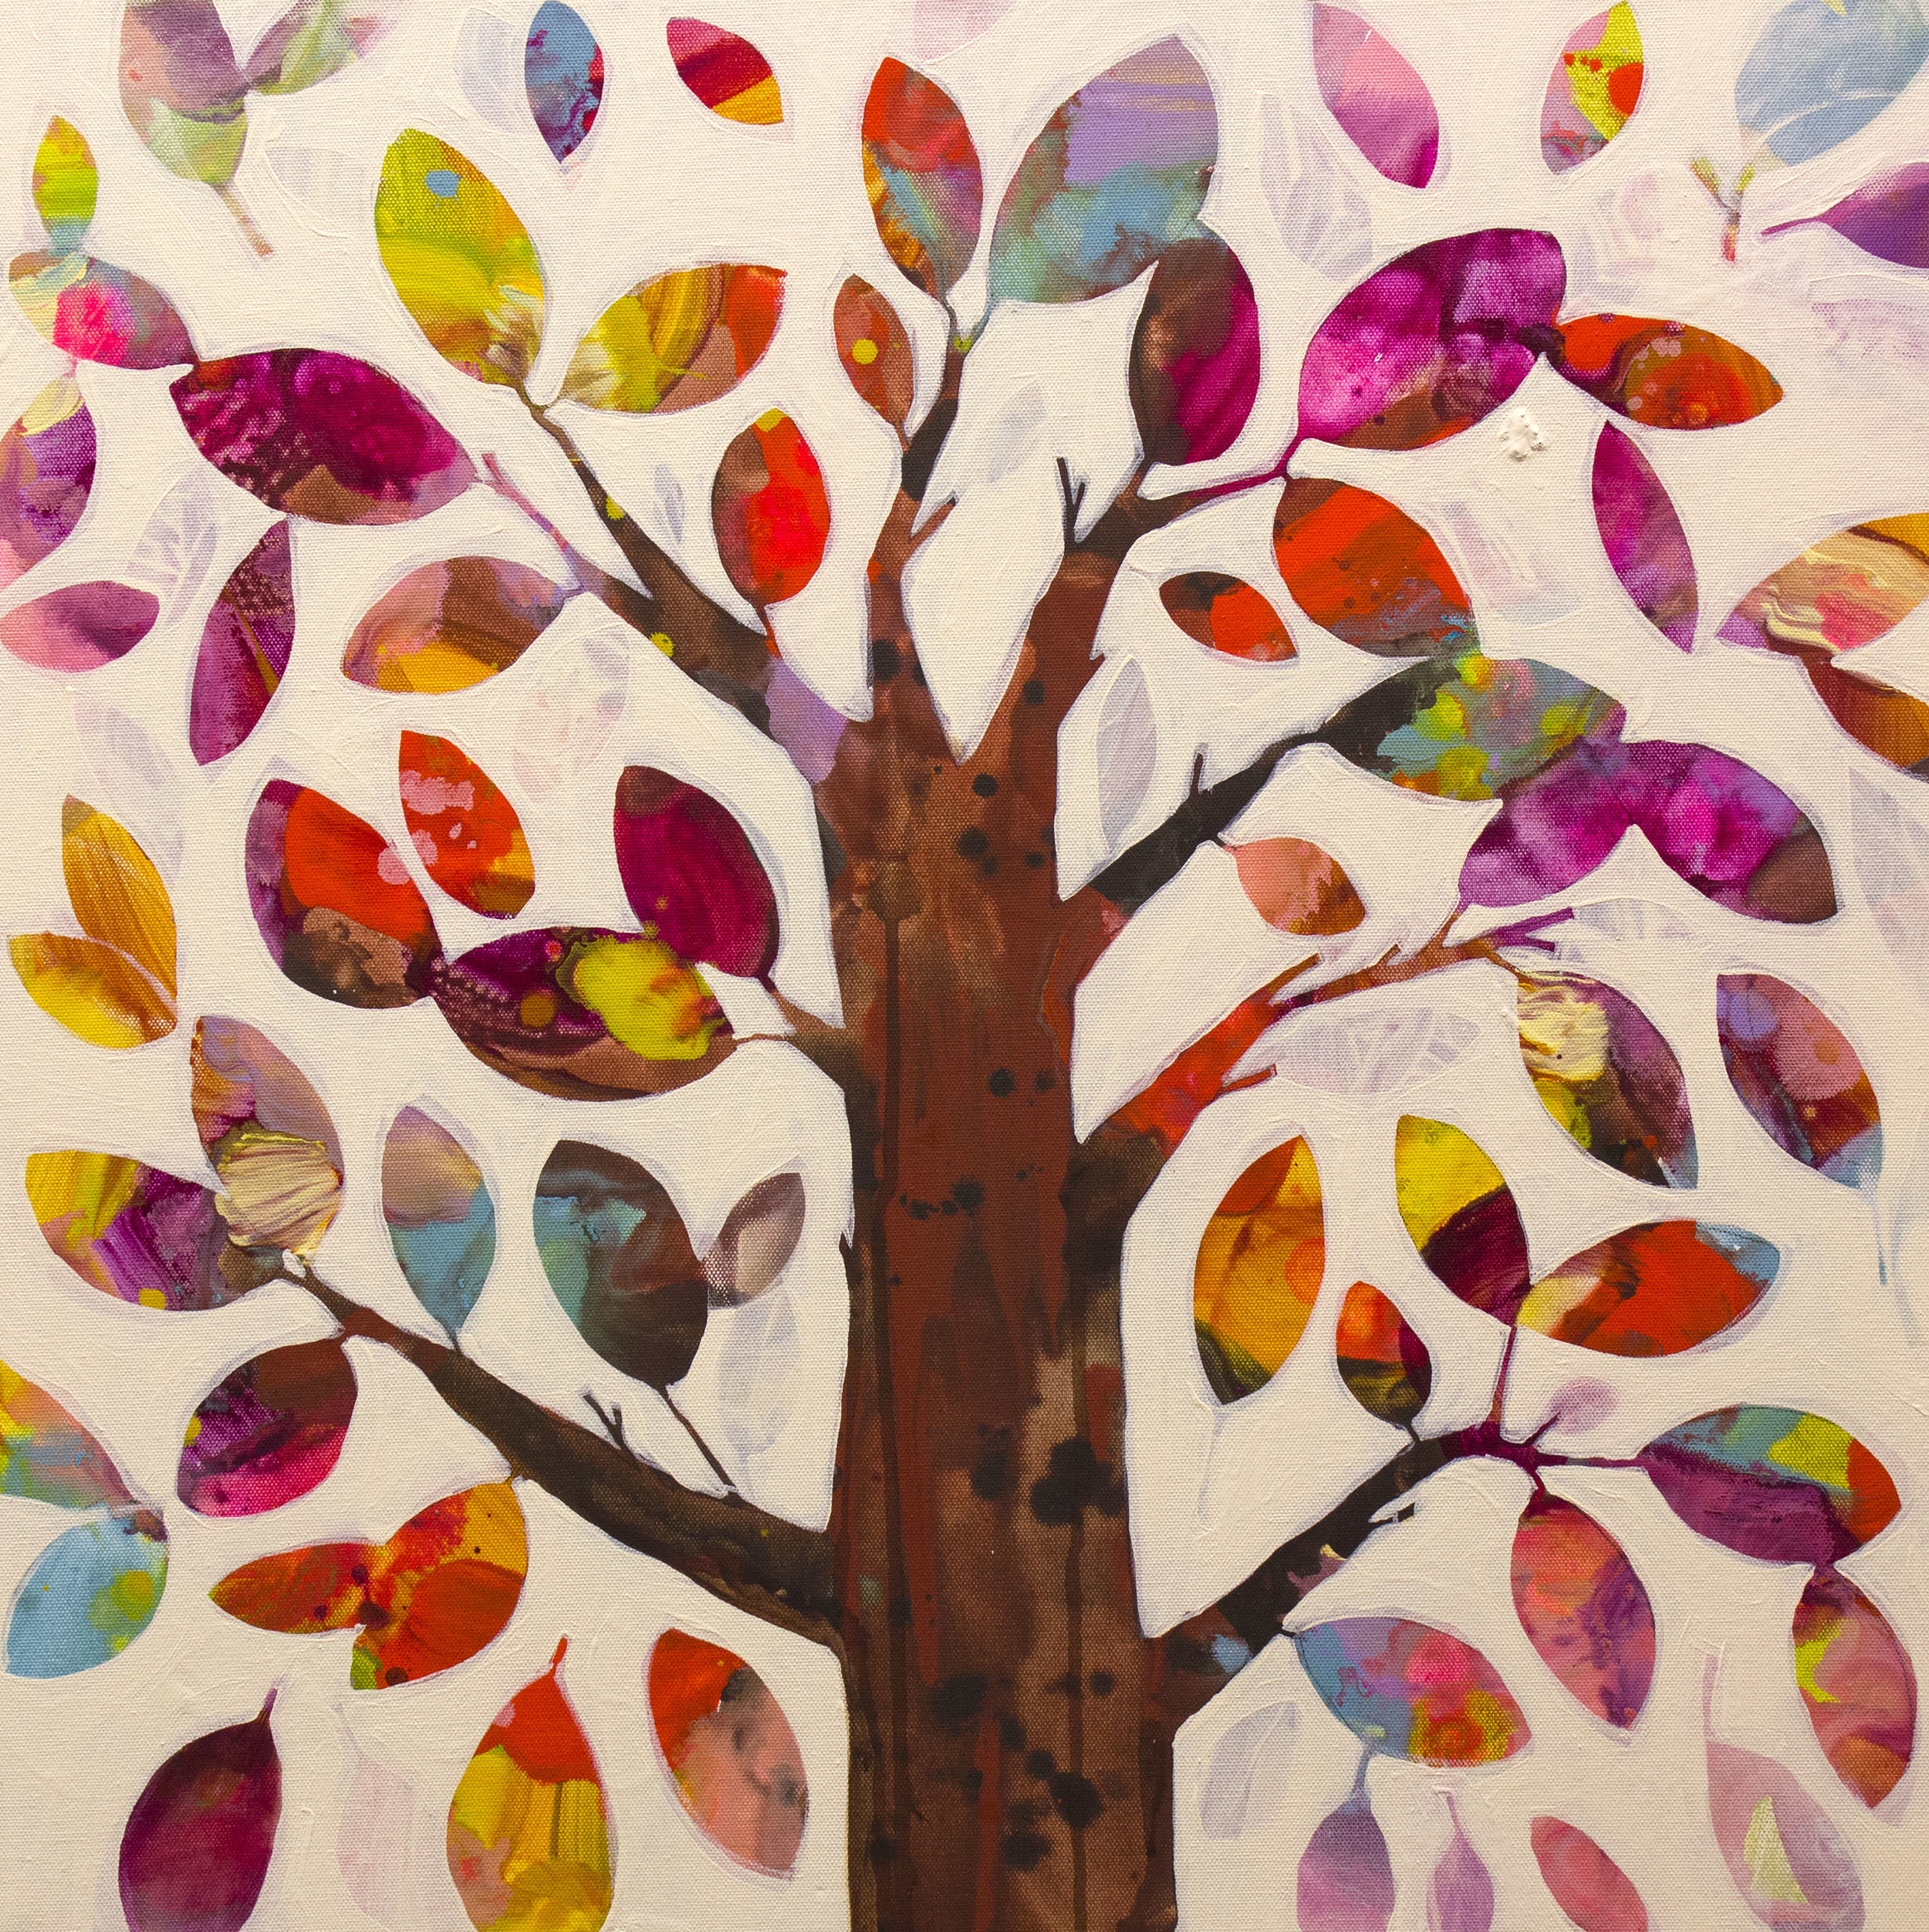 LOVE TREE III | 50 x 50cm $370